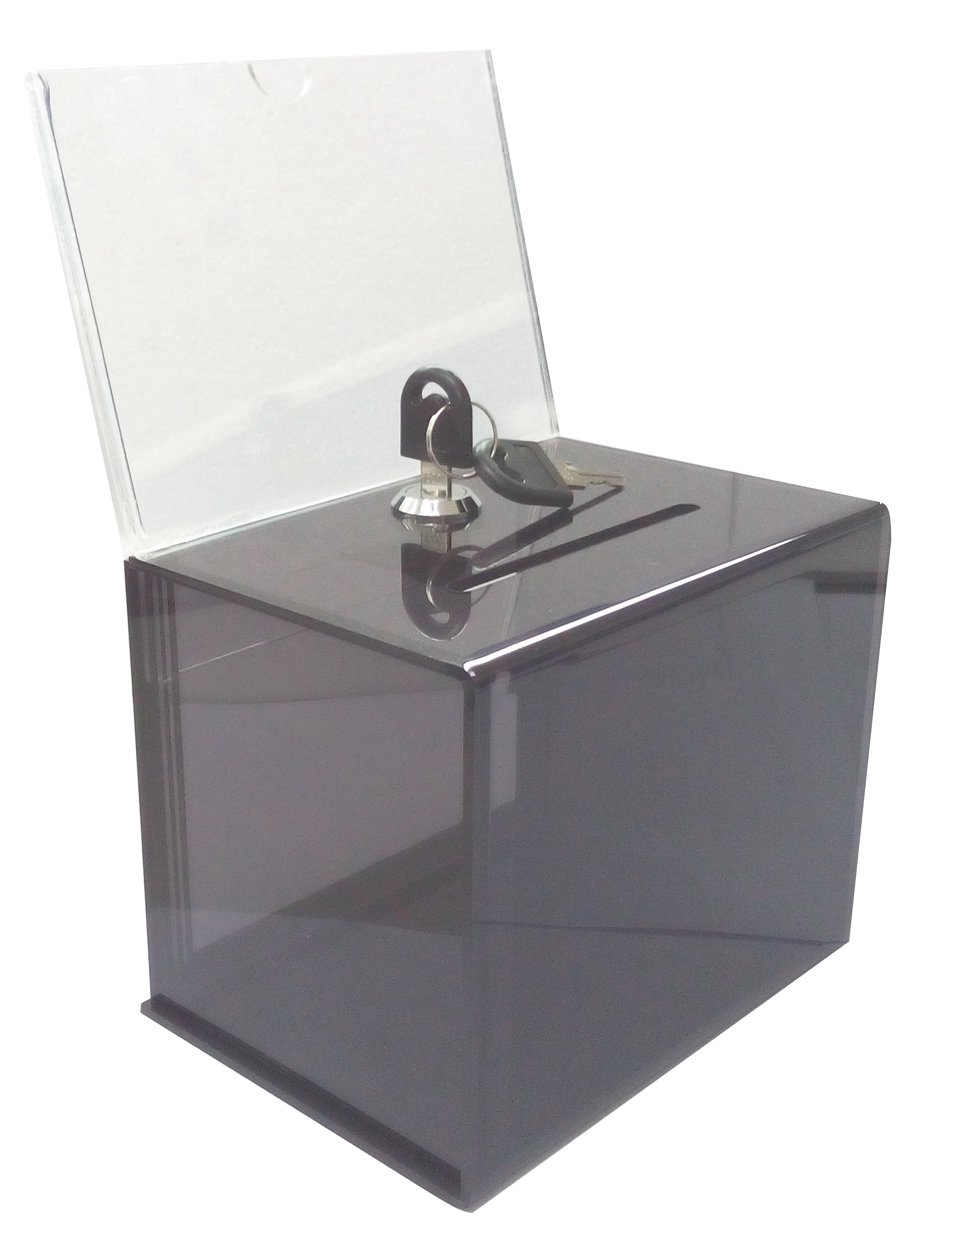 FixtureDisplays 6.1'' x 8.9'' x 4.4'' Acrylic Ballot Box with Lock, 6 x 4 Sign Holder - Amber 19215